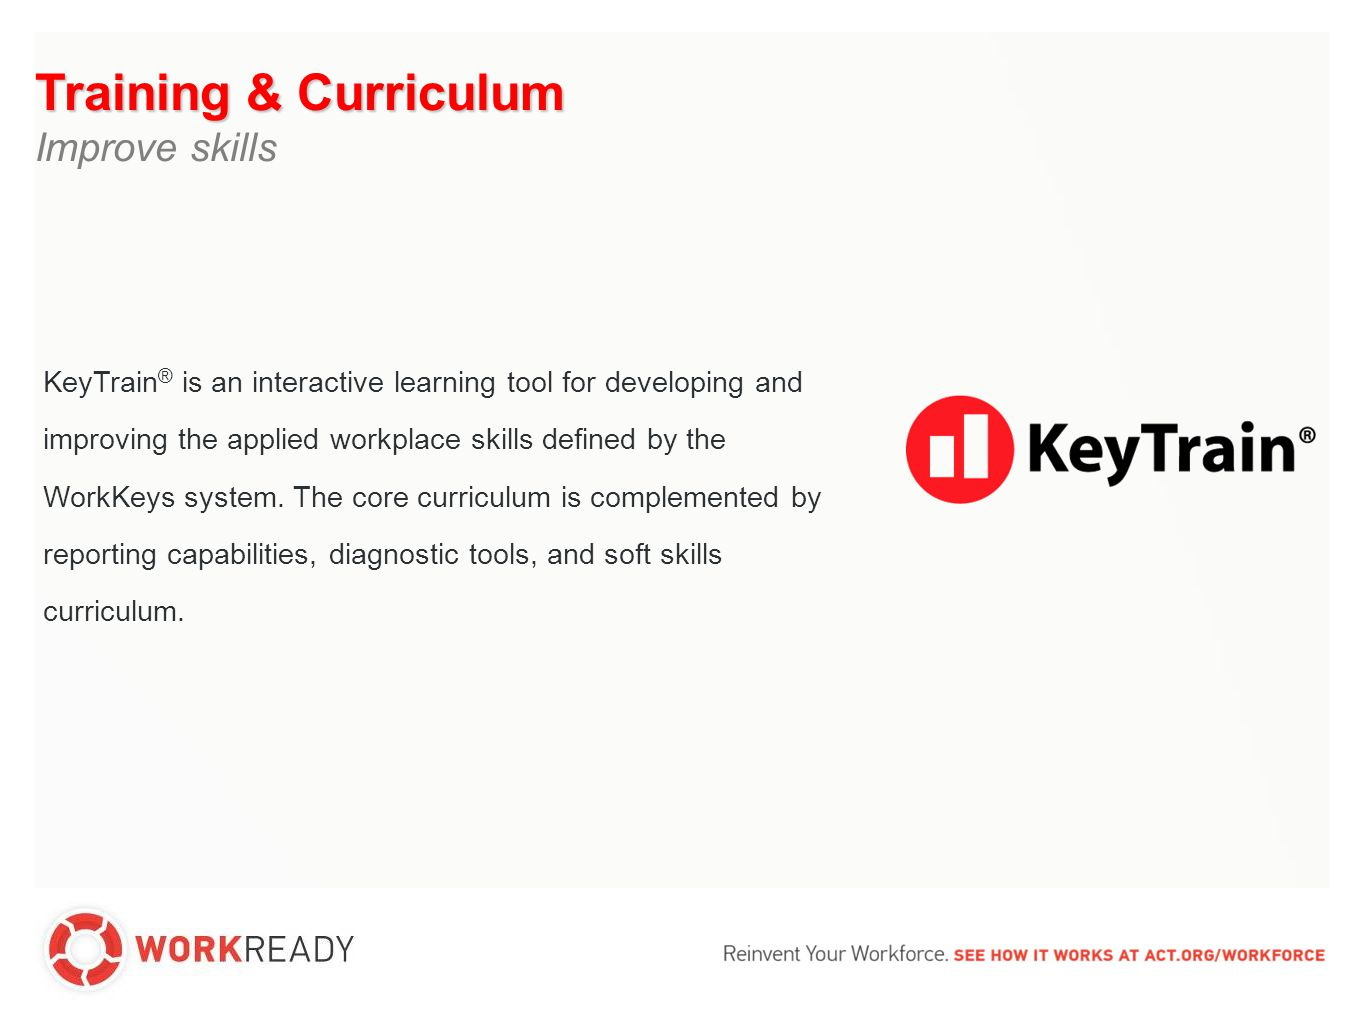 Training & Curriculum Improve skills 3 4 3 4 3 4 55 6 3 4 Applied Mathematics 3 4 Reading for Information 3 4 Locating Information 5 Skills Gap Individual Results Job Profile 5 6 KeyTrain KeyTrain provides a self-paced curriculum to help individuals fill their skills gap